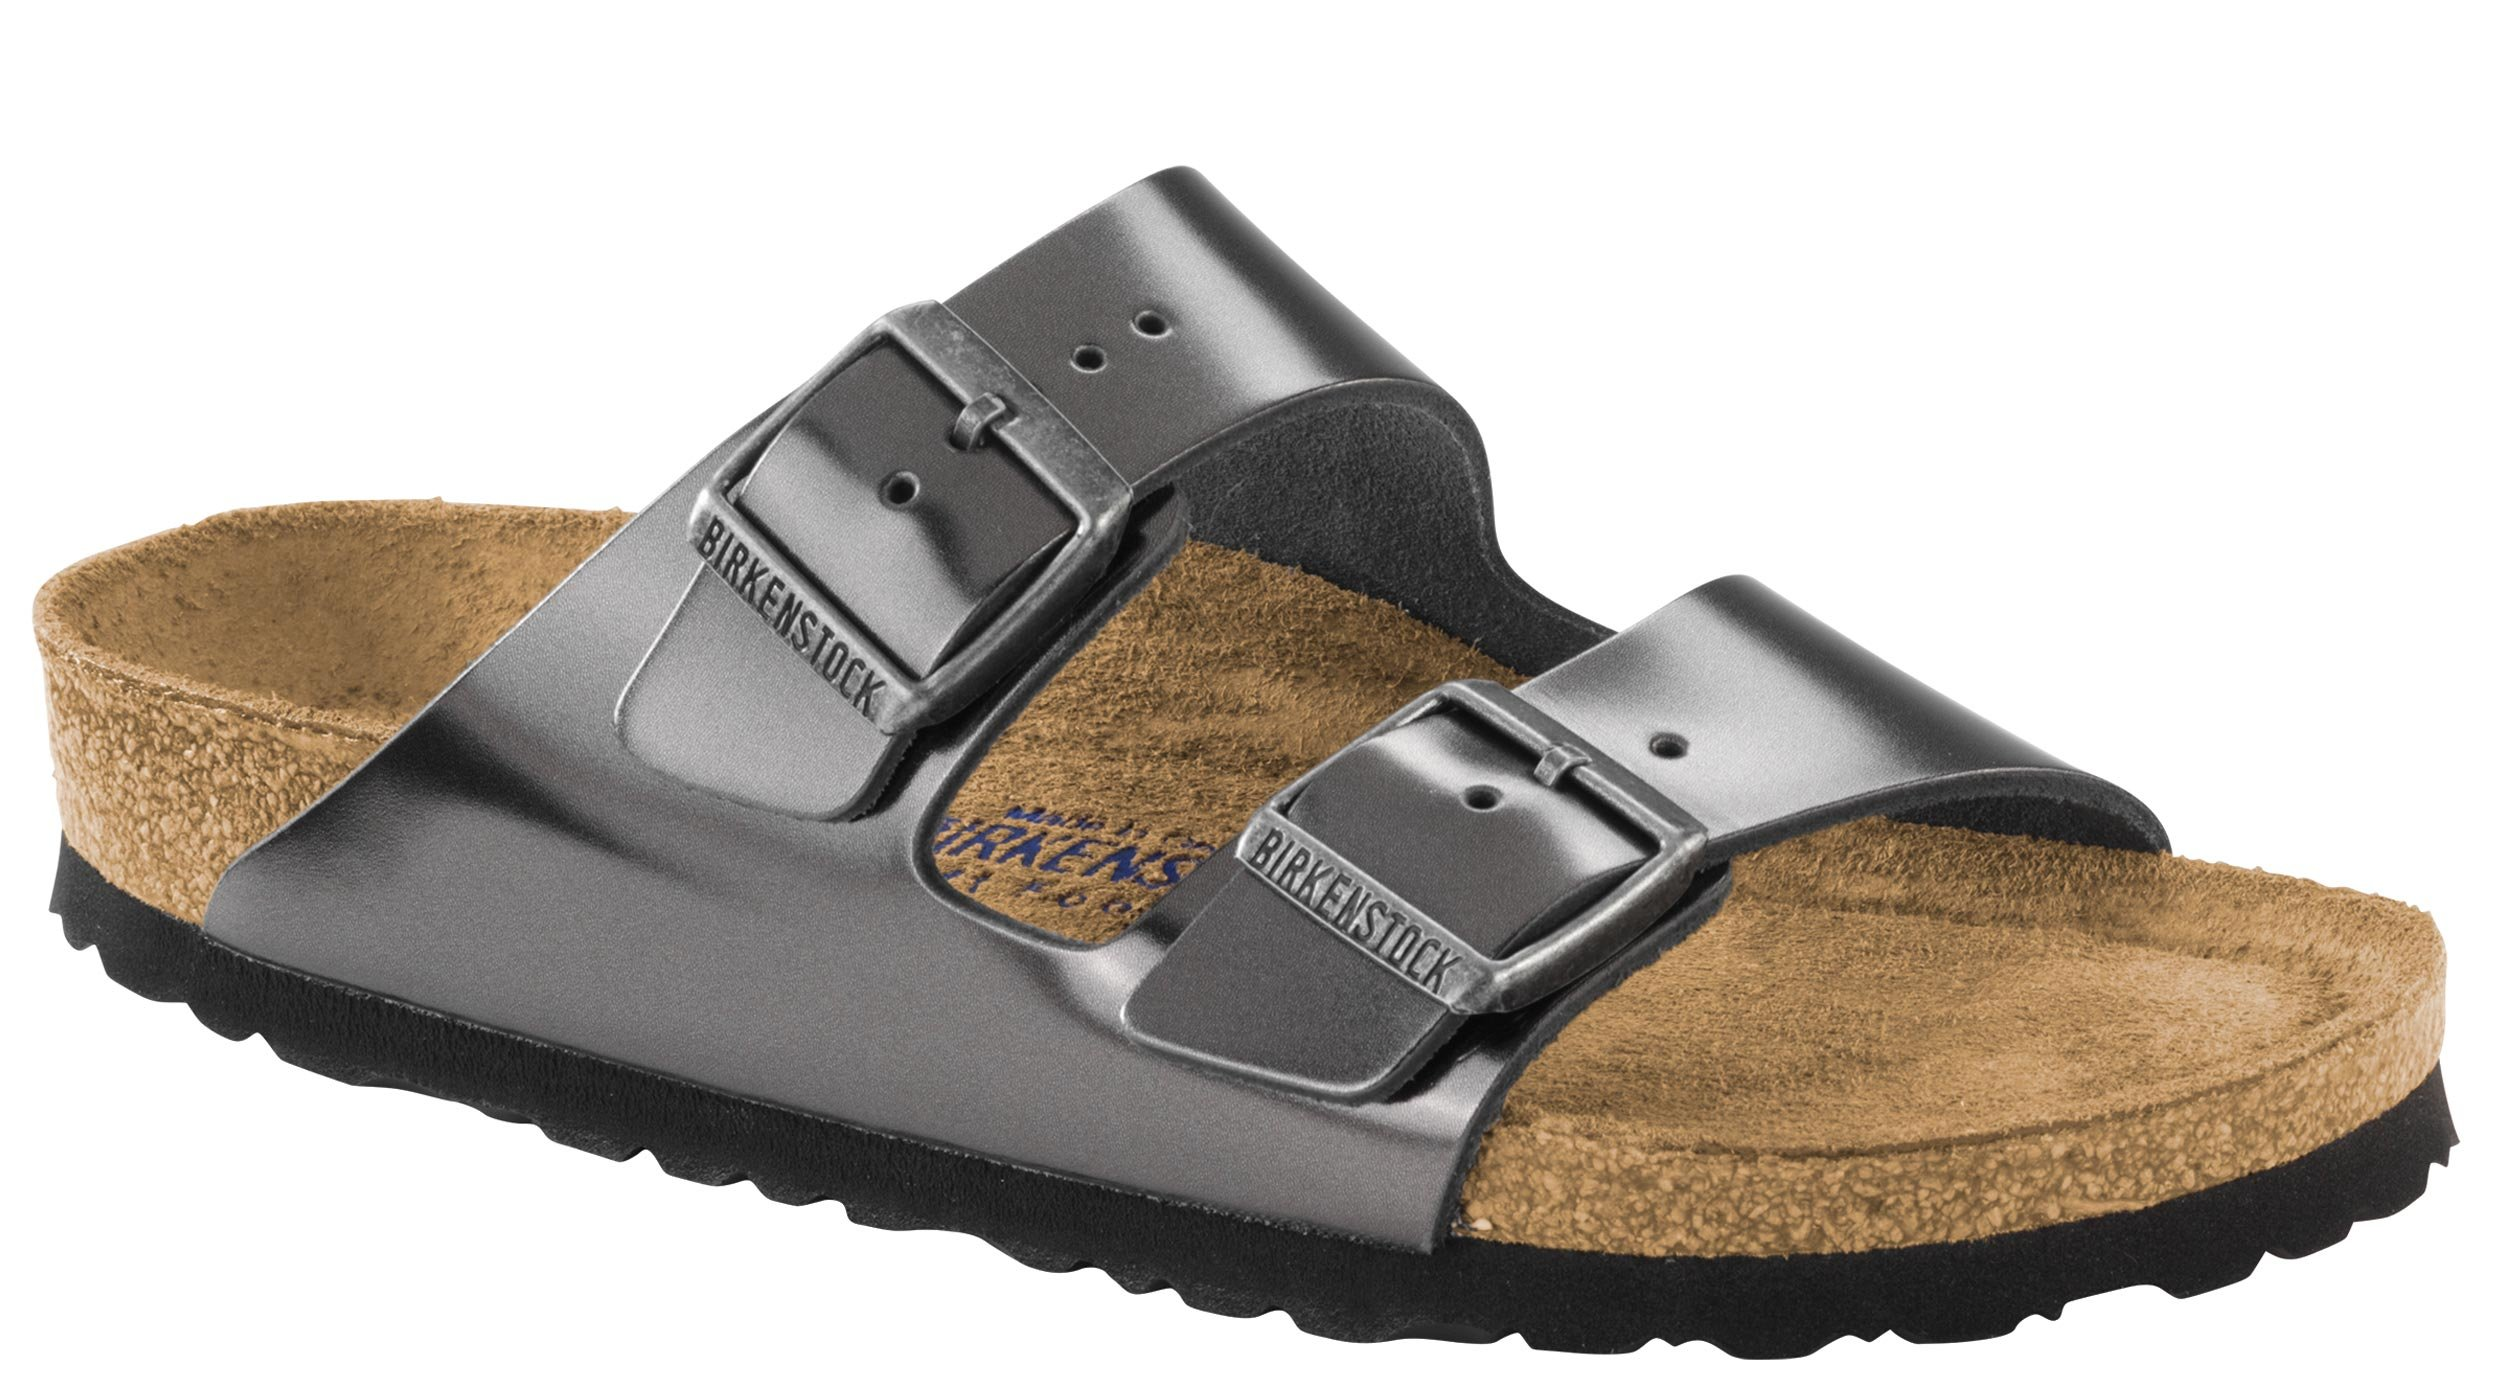 Birkenstock Unisex Arizona Metallic Anthracite Leather Sandals - 7-7.5 2A(N) US Women